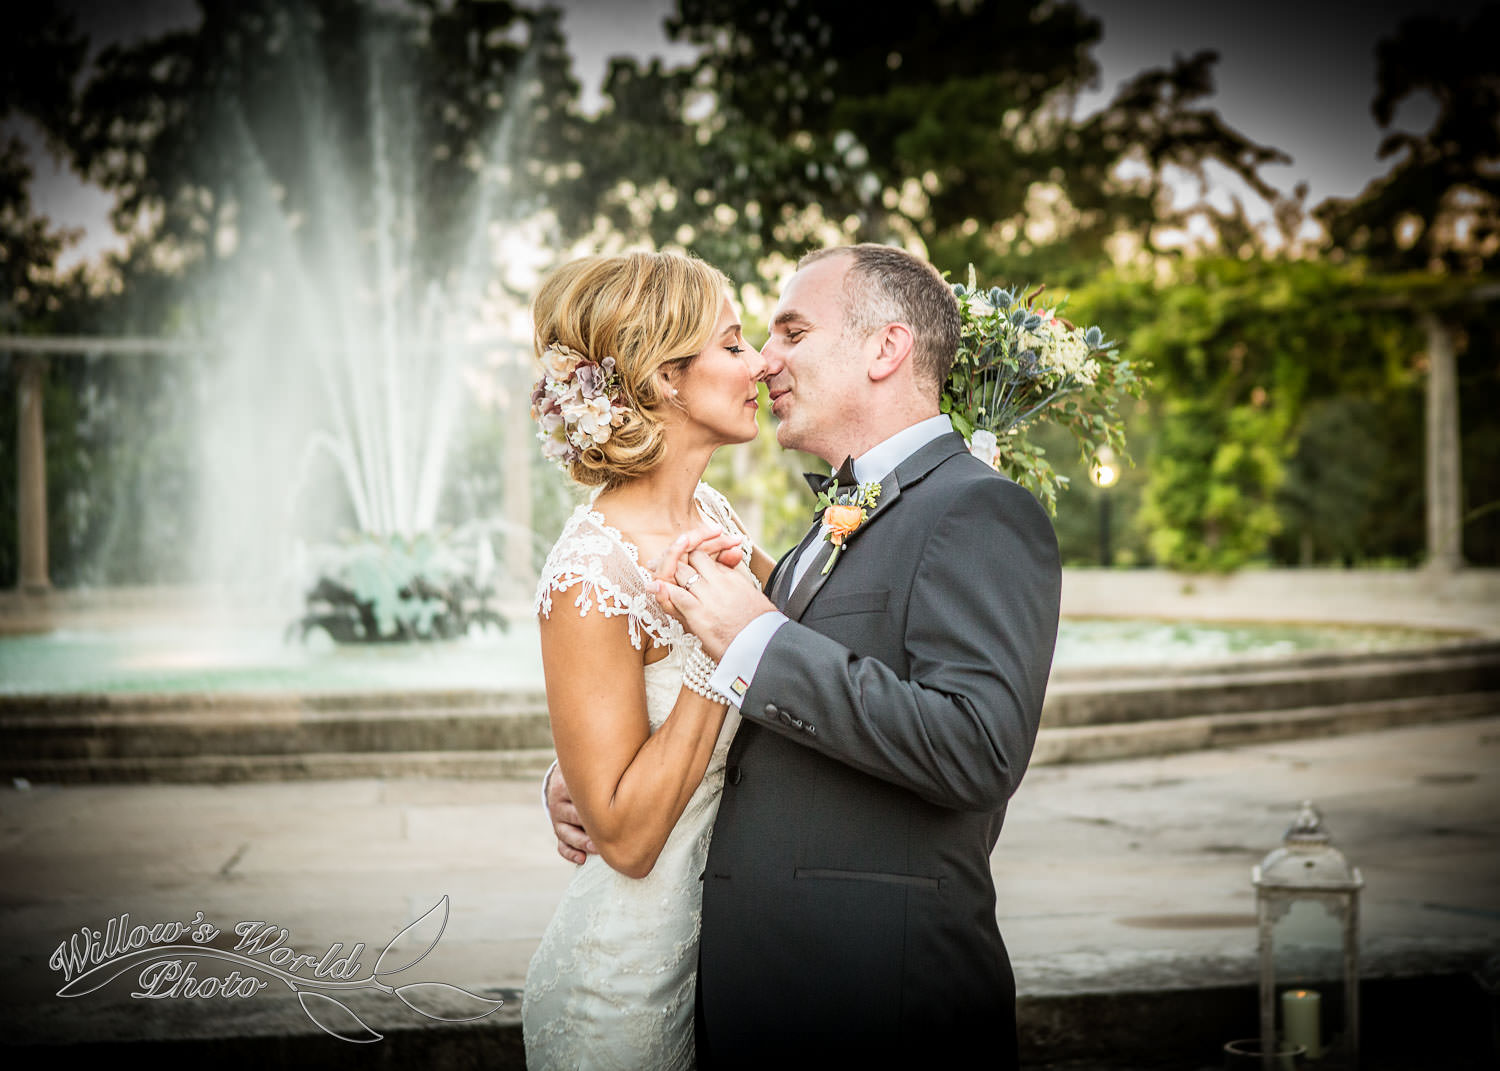 ...Without missing a chance at catching the sunset and fountain behind their gorgeous first kiss as husband and wife.